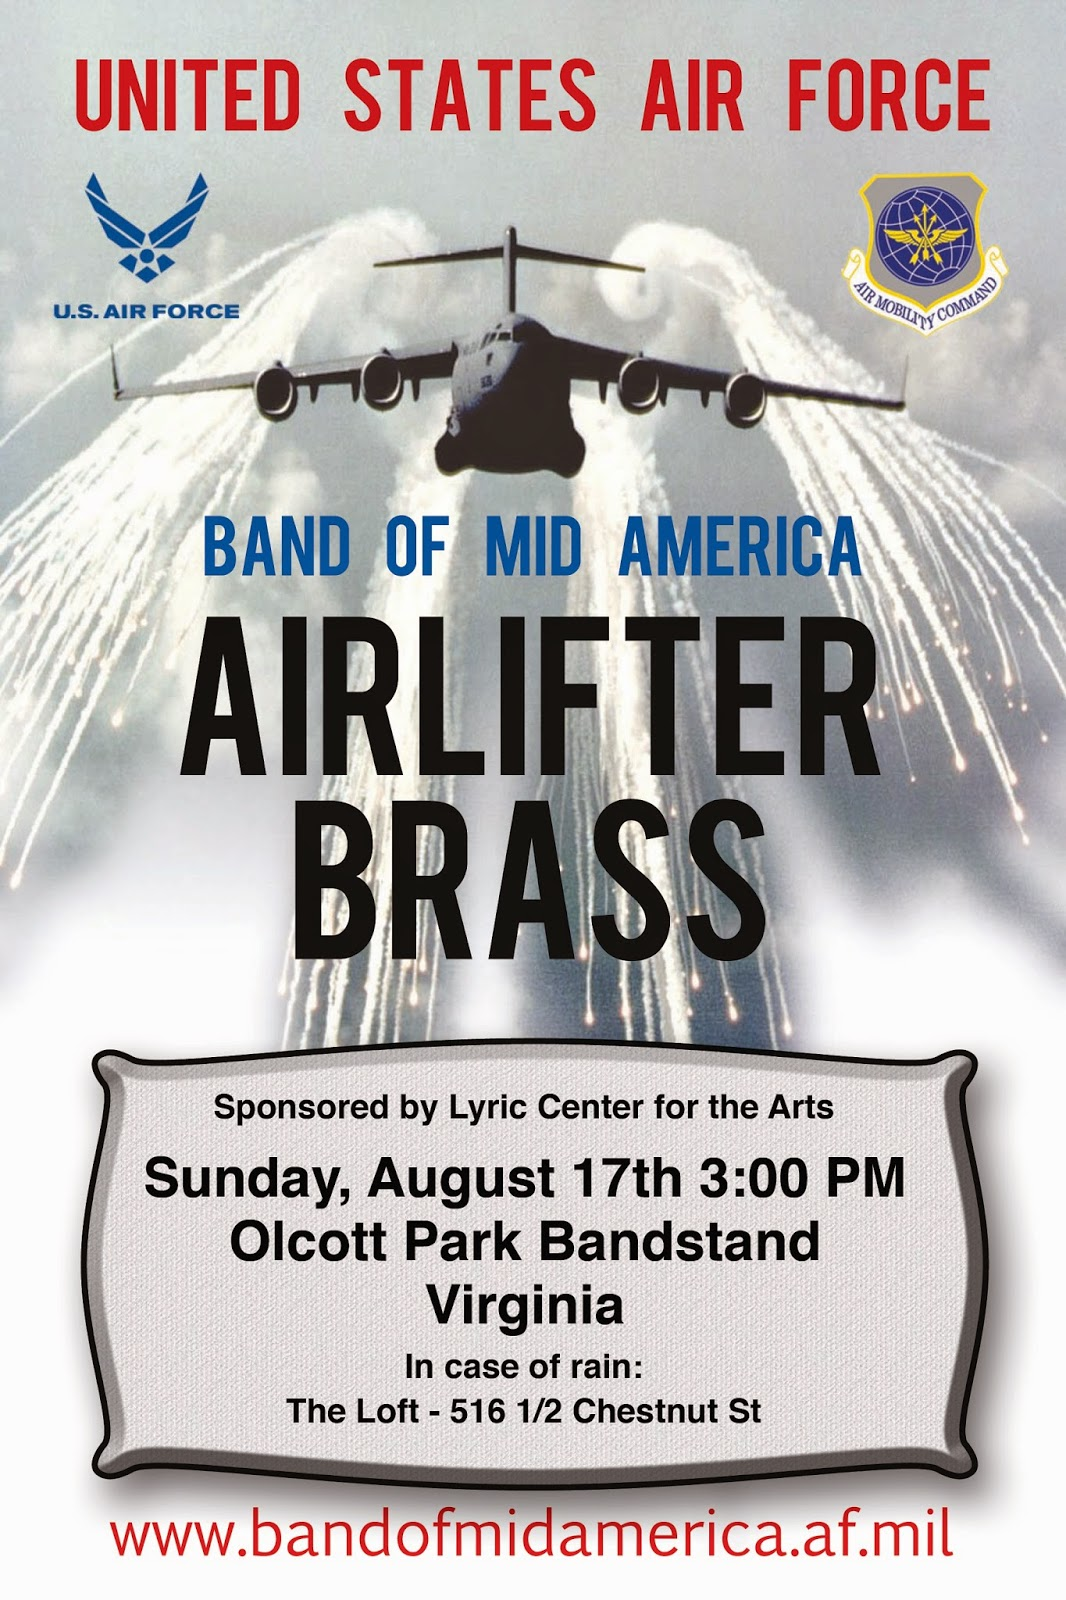 United States Air Force Presents: AIRLIFTER BRASS PERFORMANCE in Virginia - LYRIC CENTER FOR THE ARTS